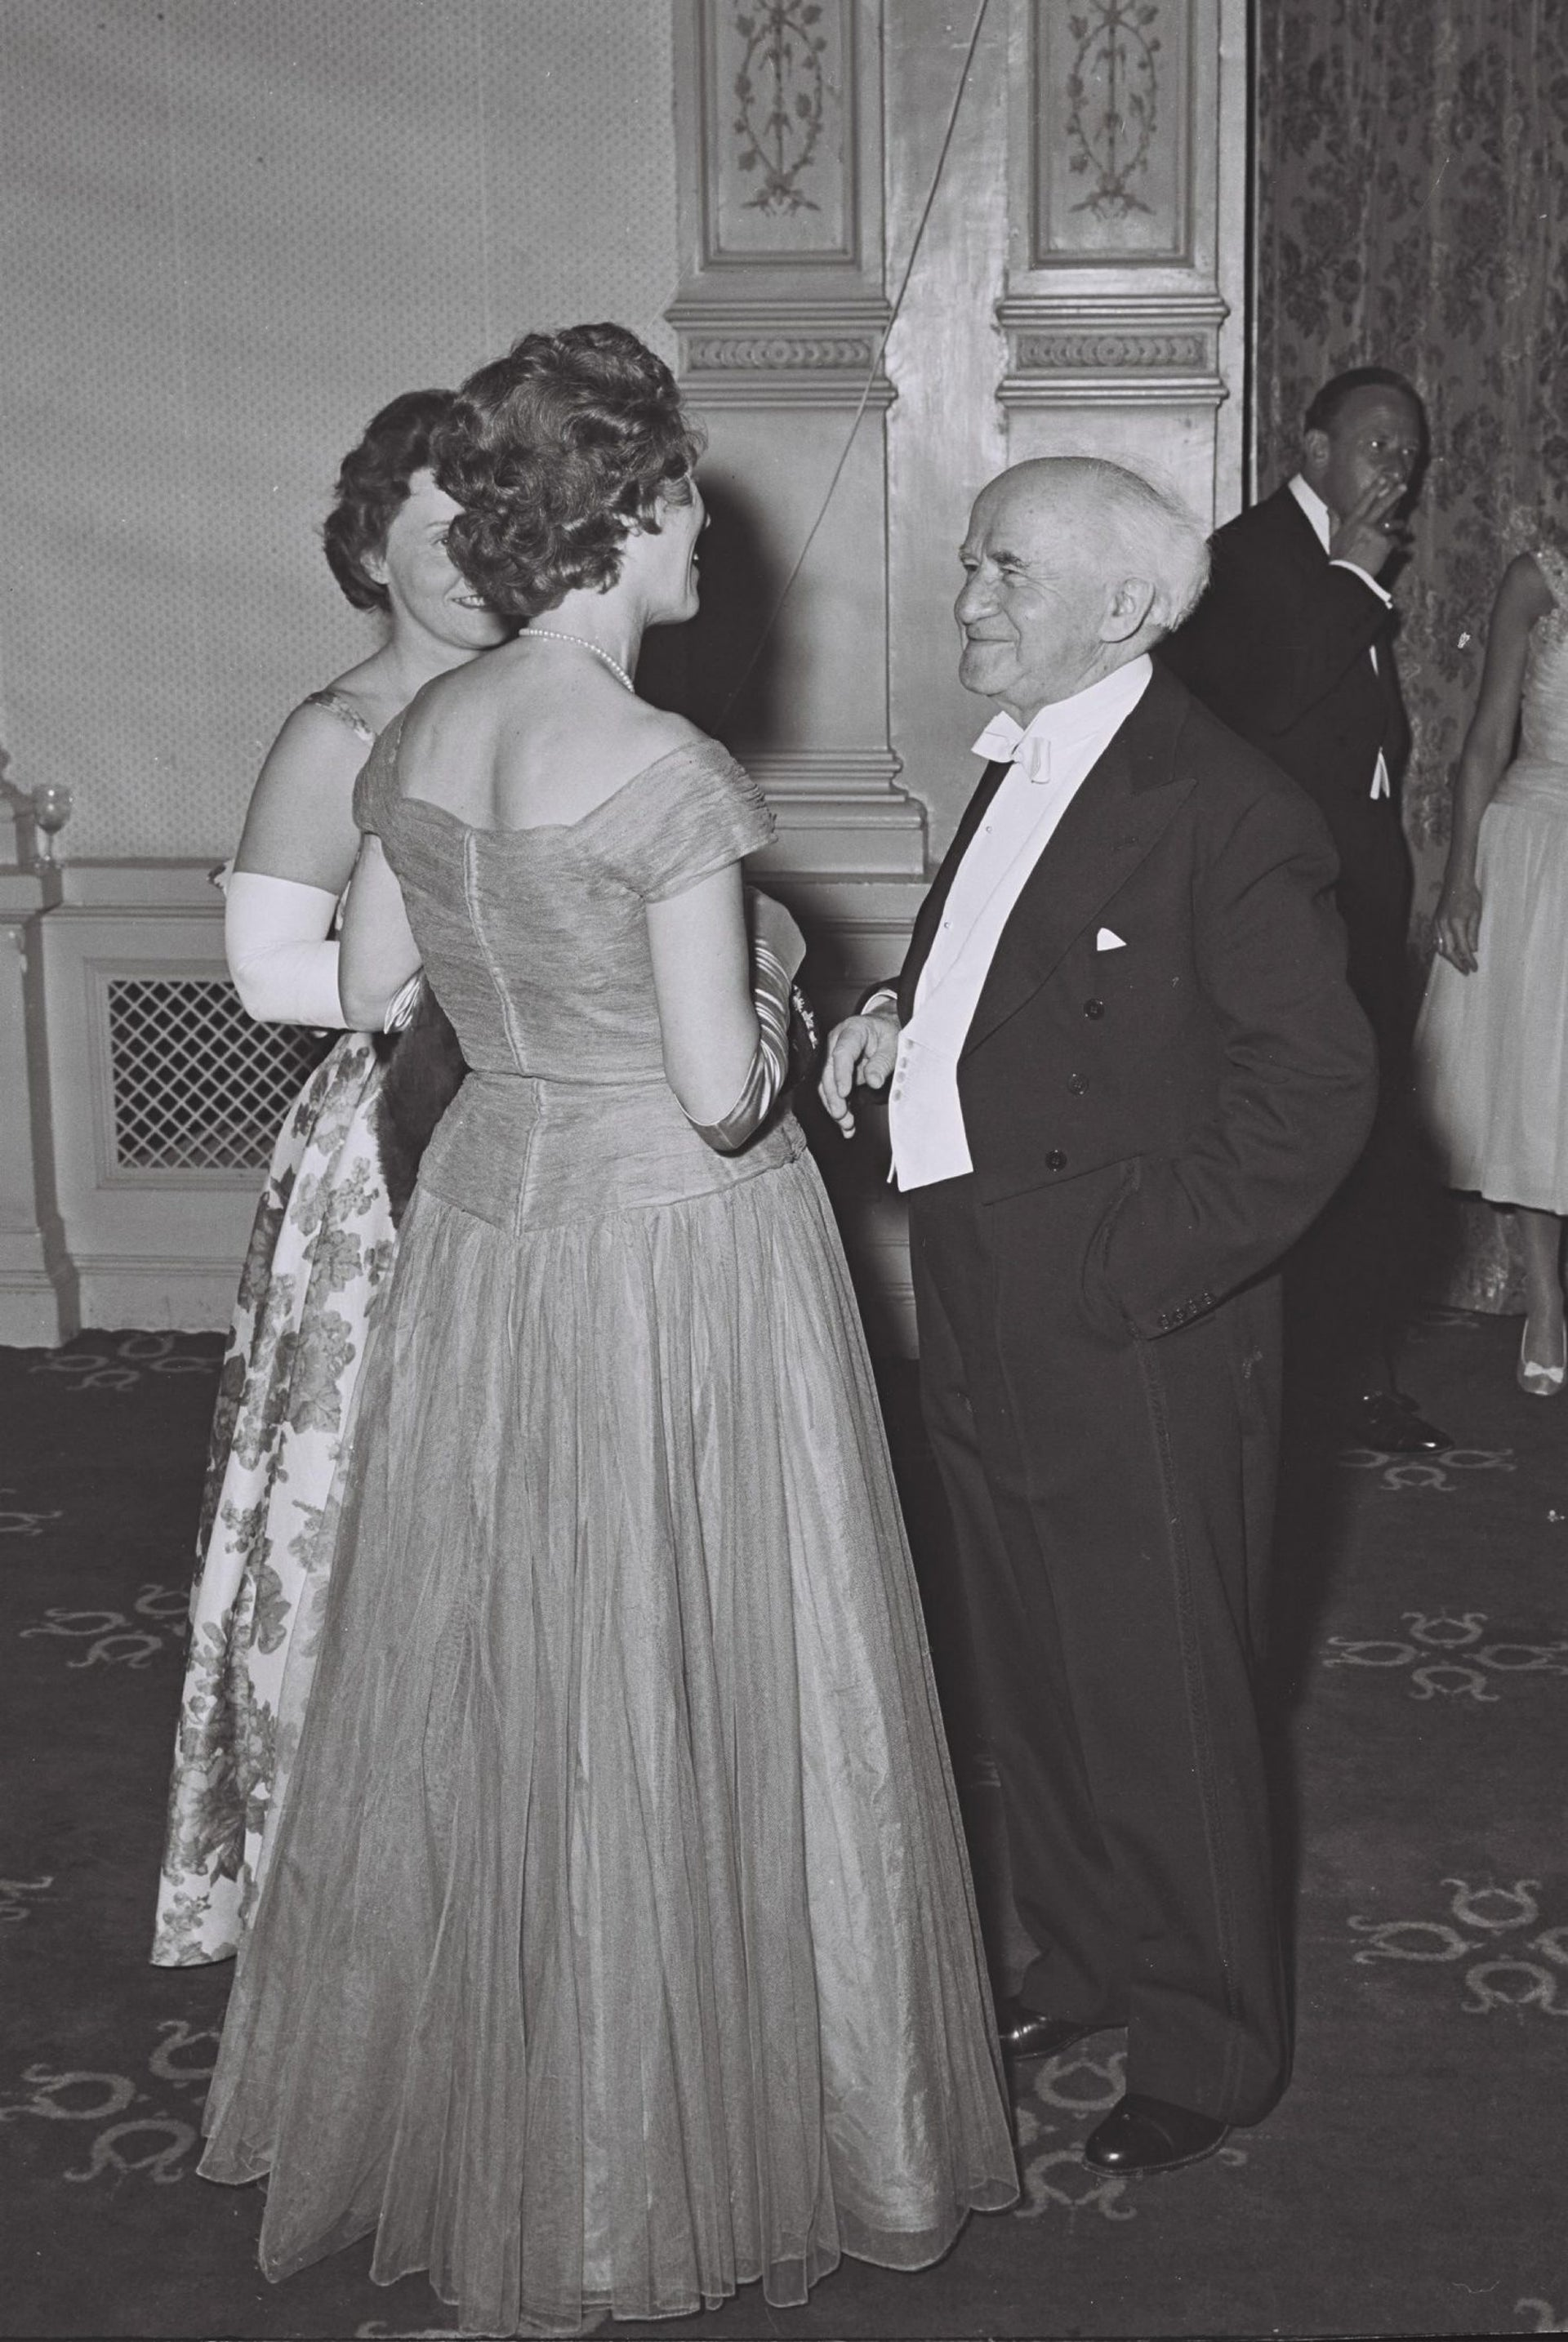 Prime Minister David Ben-Gurion attends a Dutch state dinner held in his honor during his official visit in 1960.